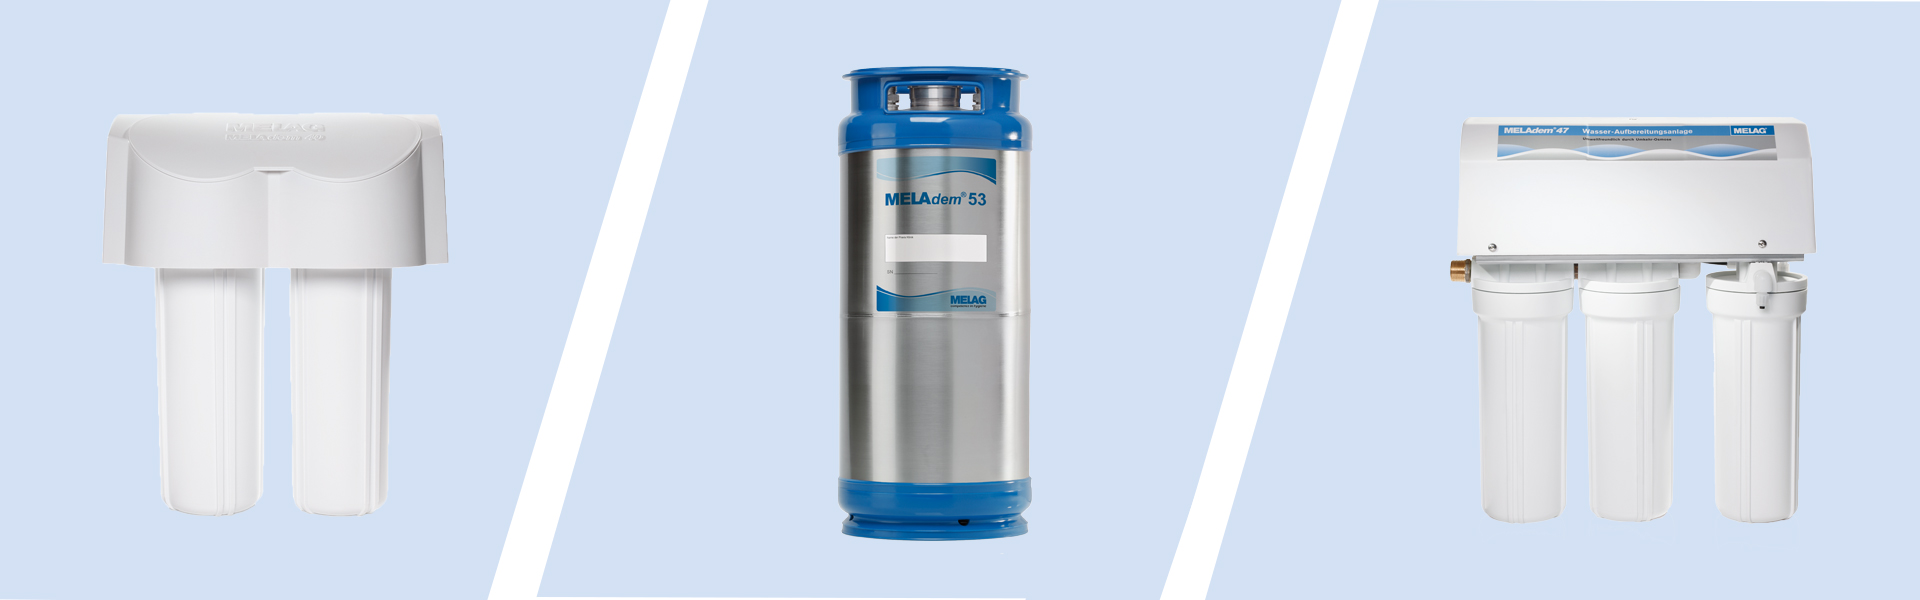 The water treatment unit series MELAdem for instrument decontamination